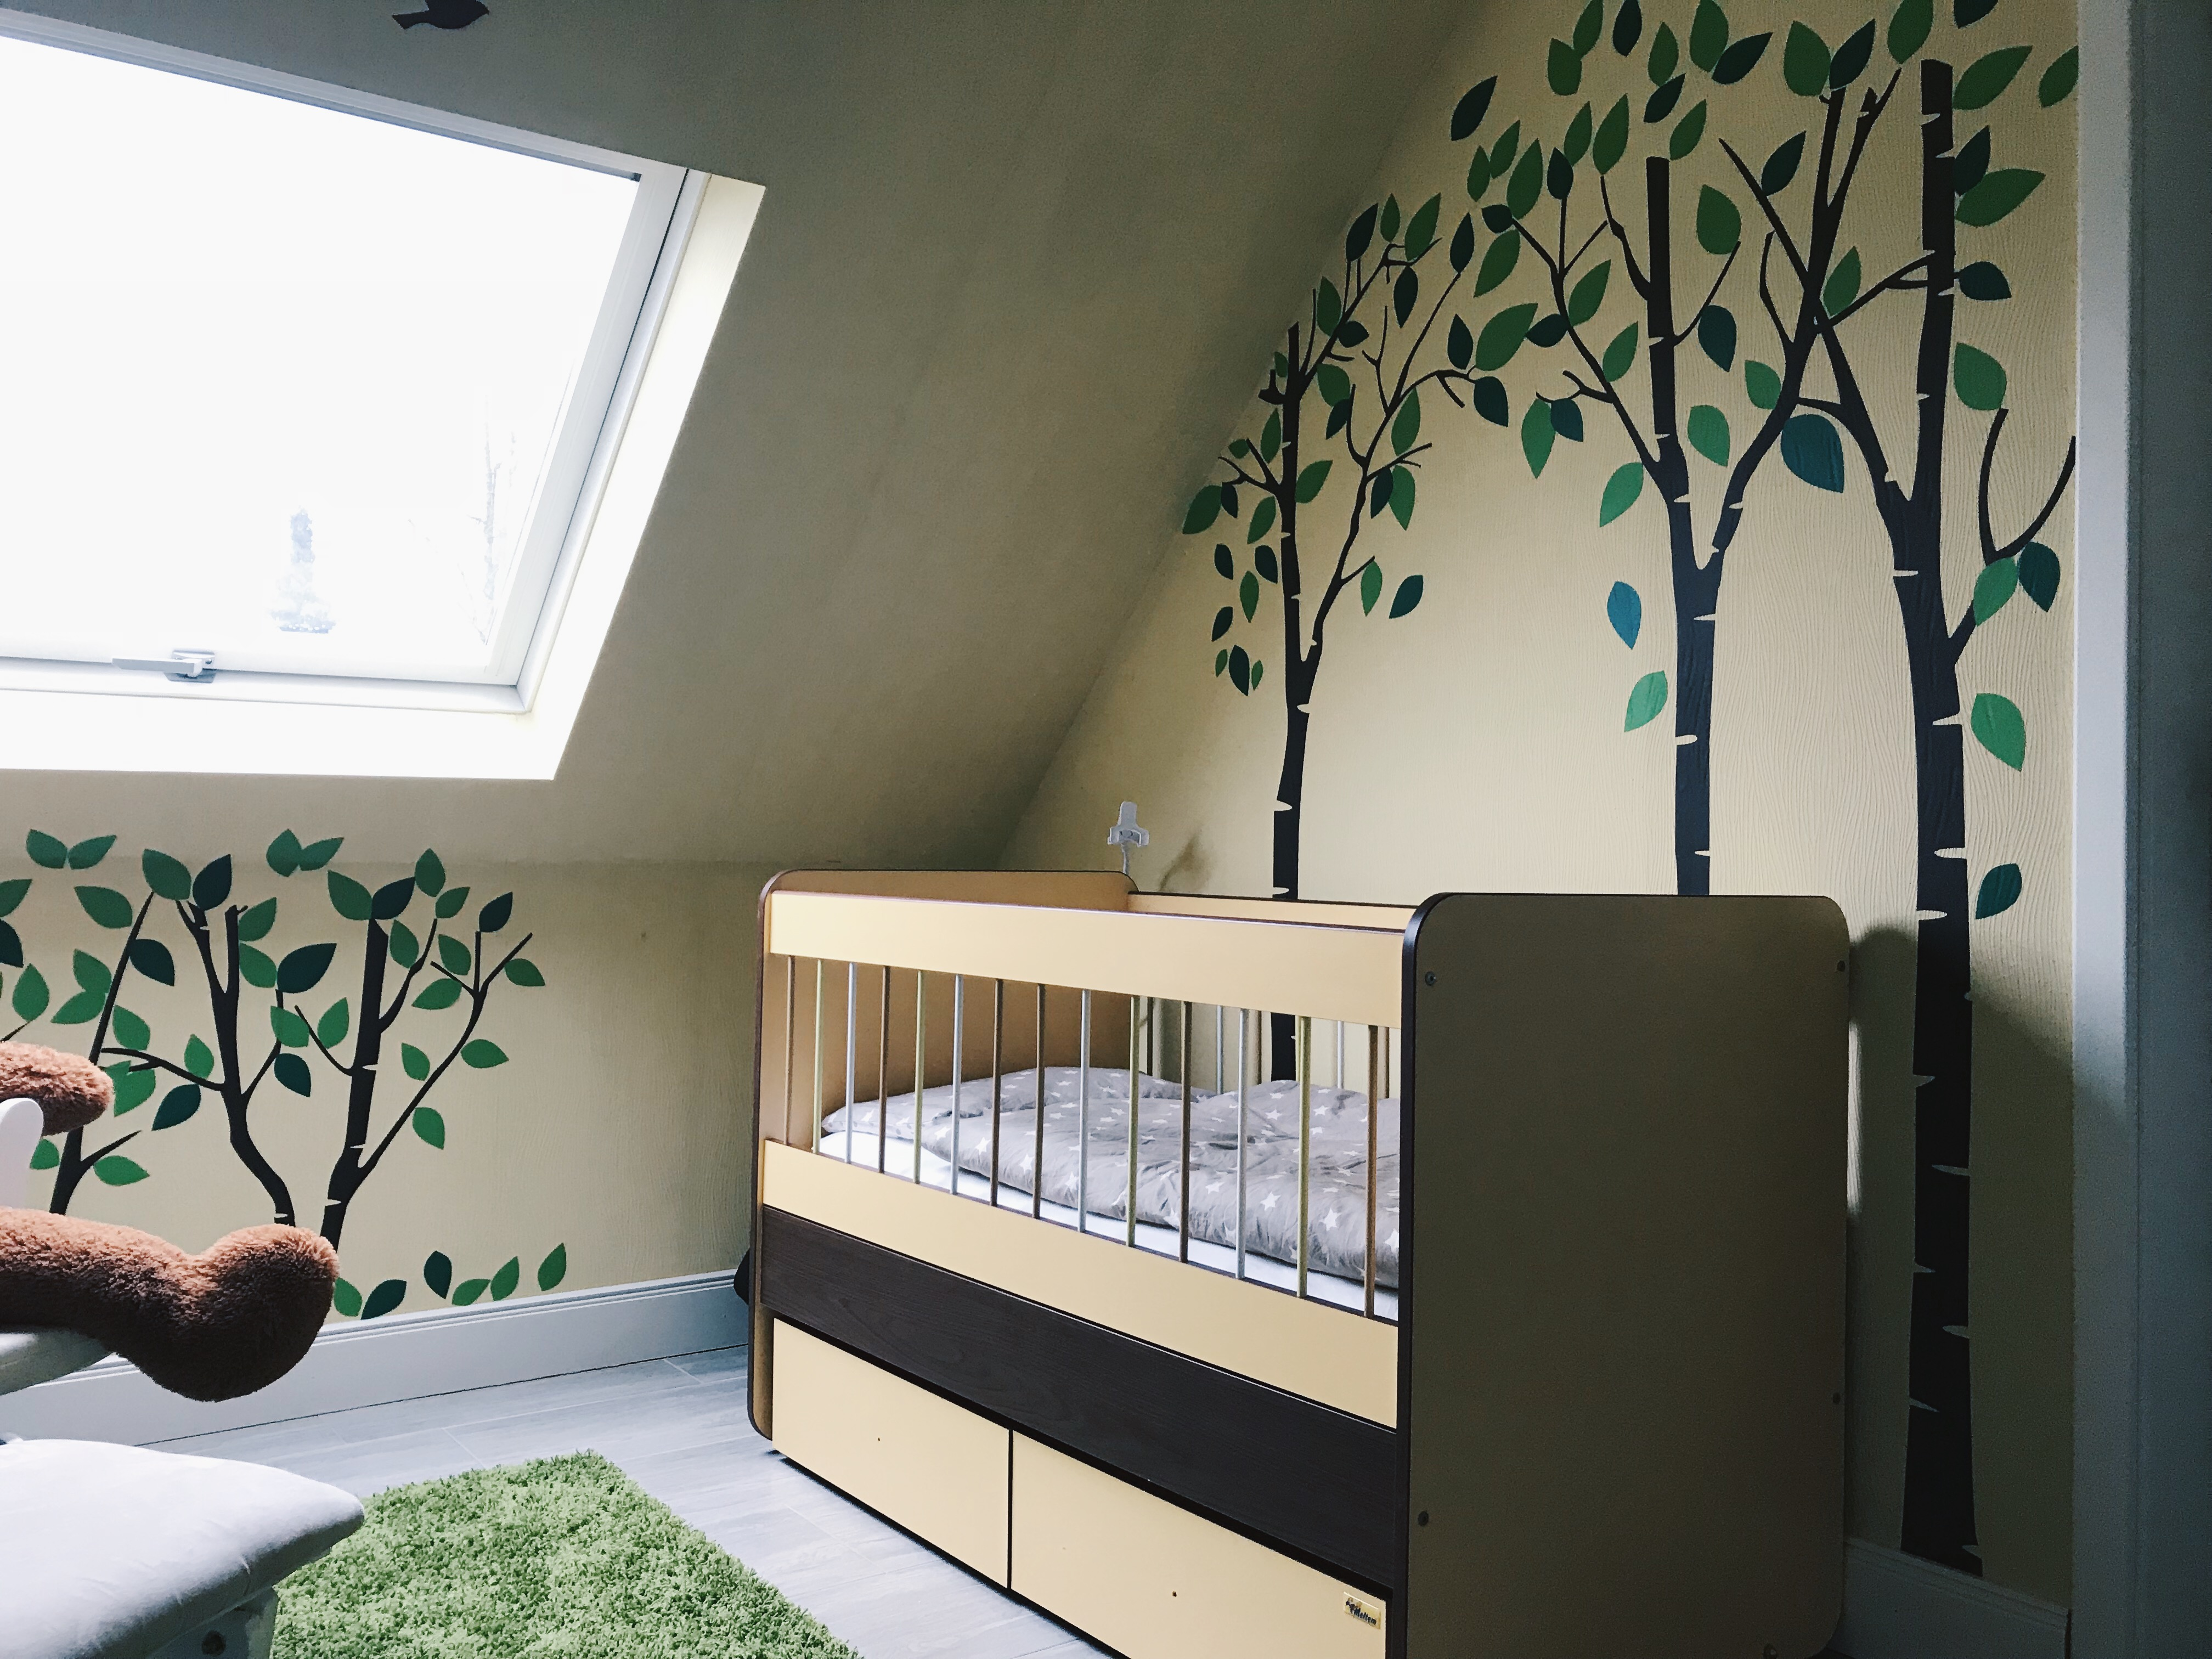 Toddlers room | Photo by Nisa Hilal on Peonycrescent